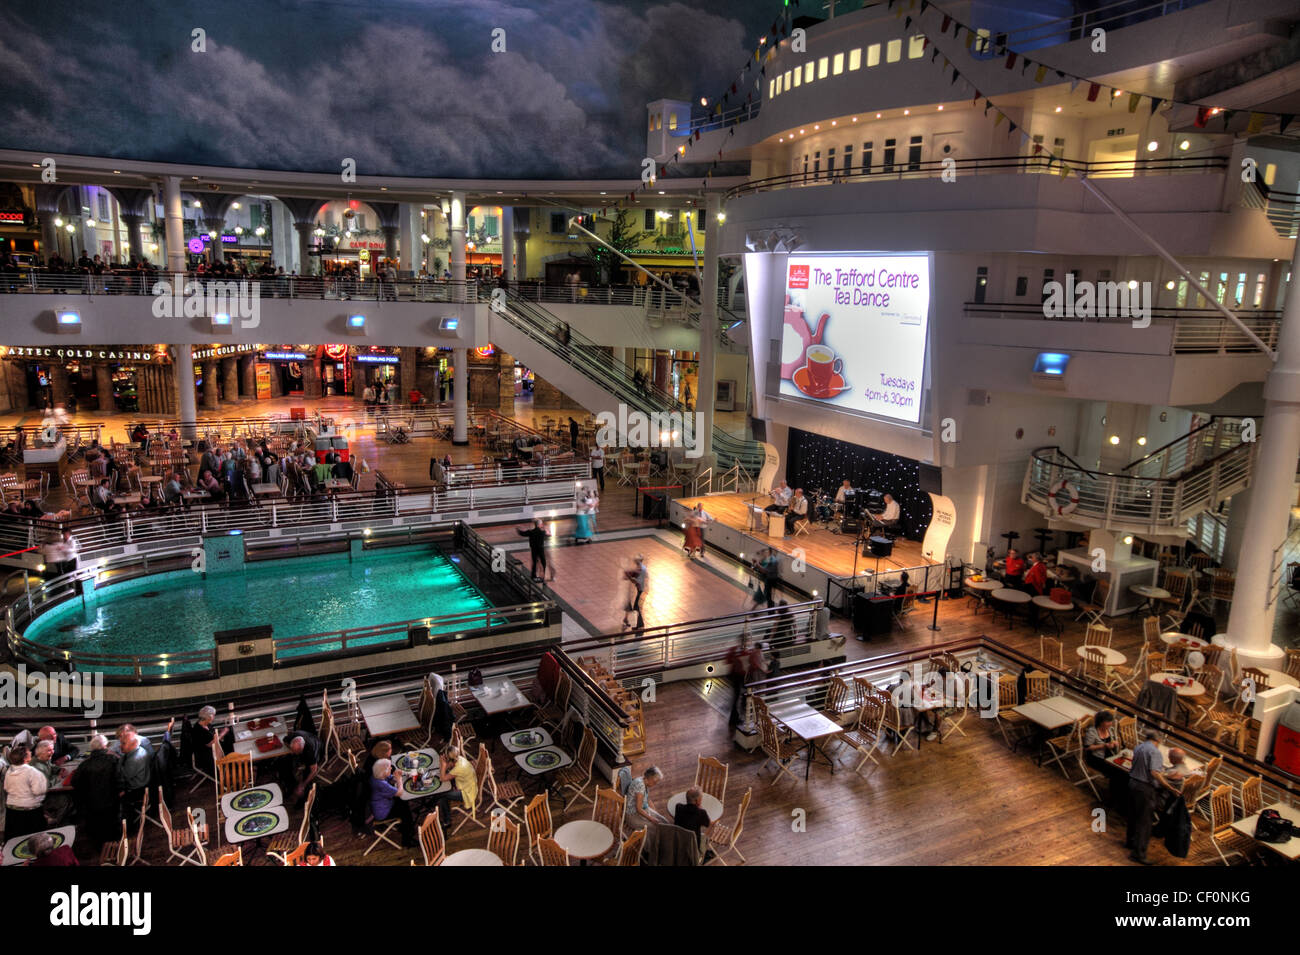 Tuesday afternoon tea dance at the food court, Trafford Centre, Dumplington, Trafford Park, Manchester, Lancashire, - Stock Image